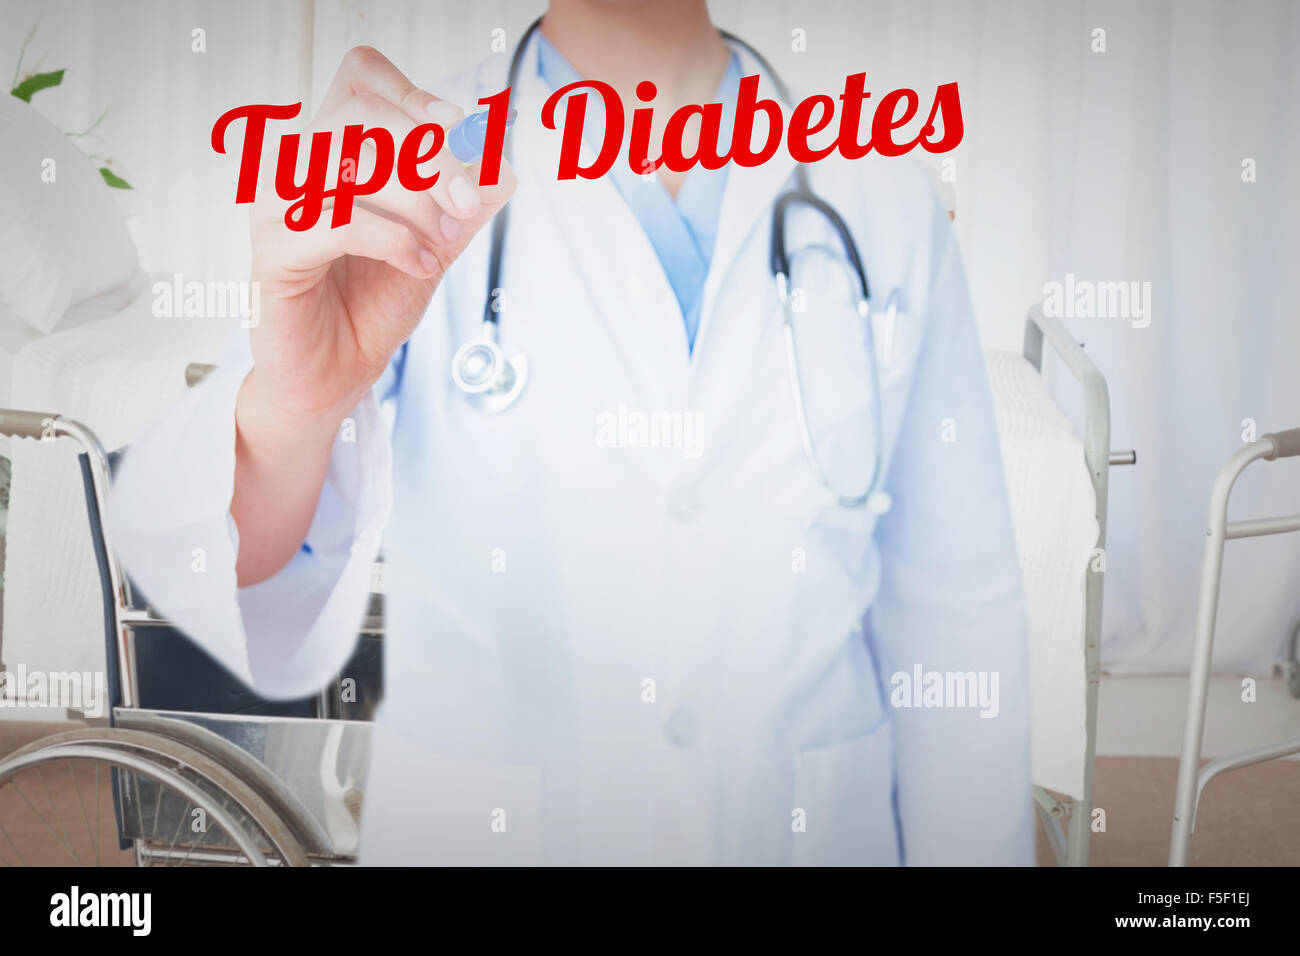 Type 1 diabetes against bright white room with windows - Stock Image